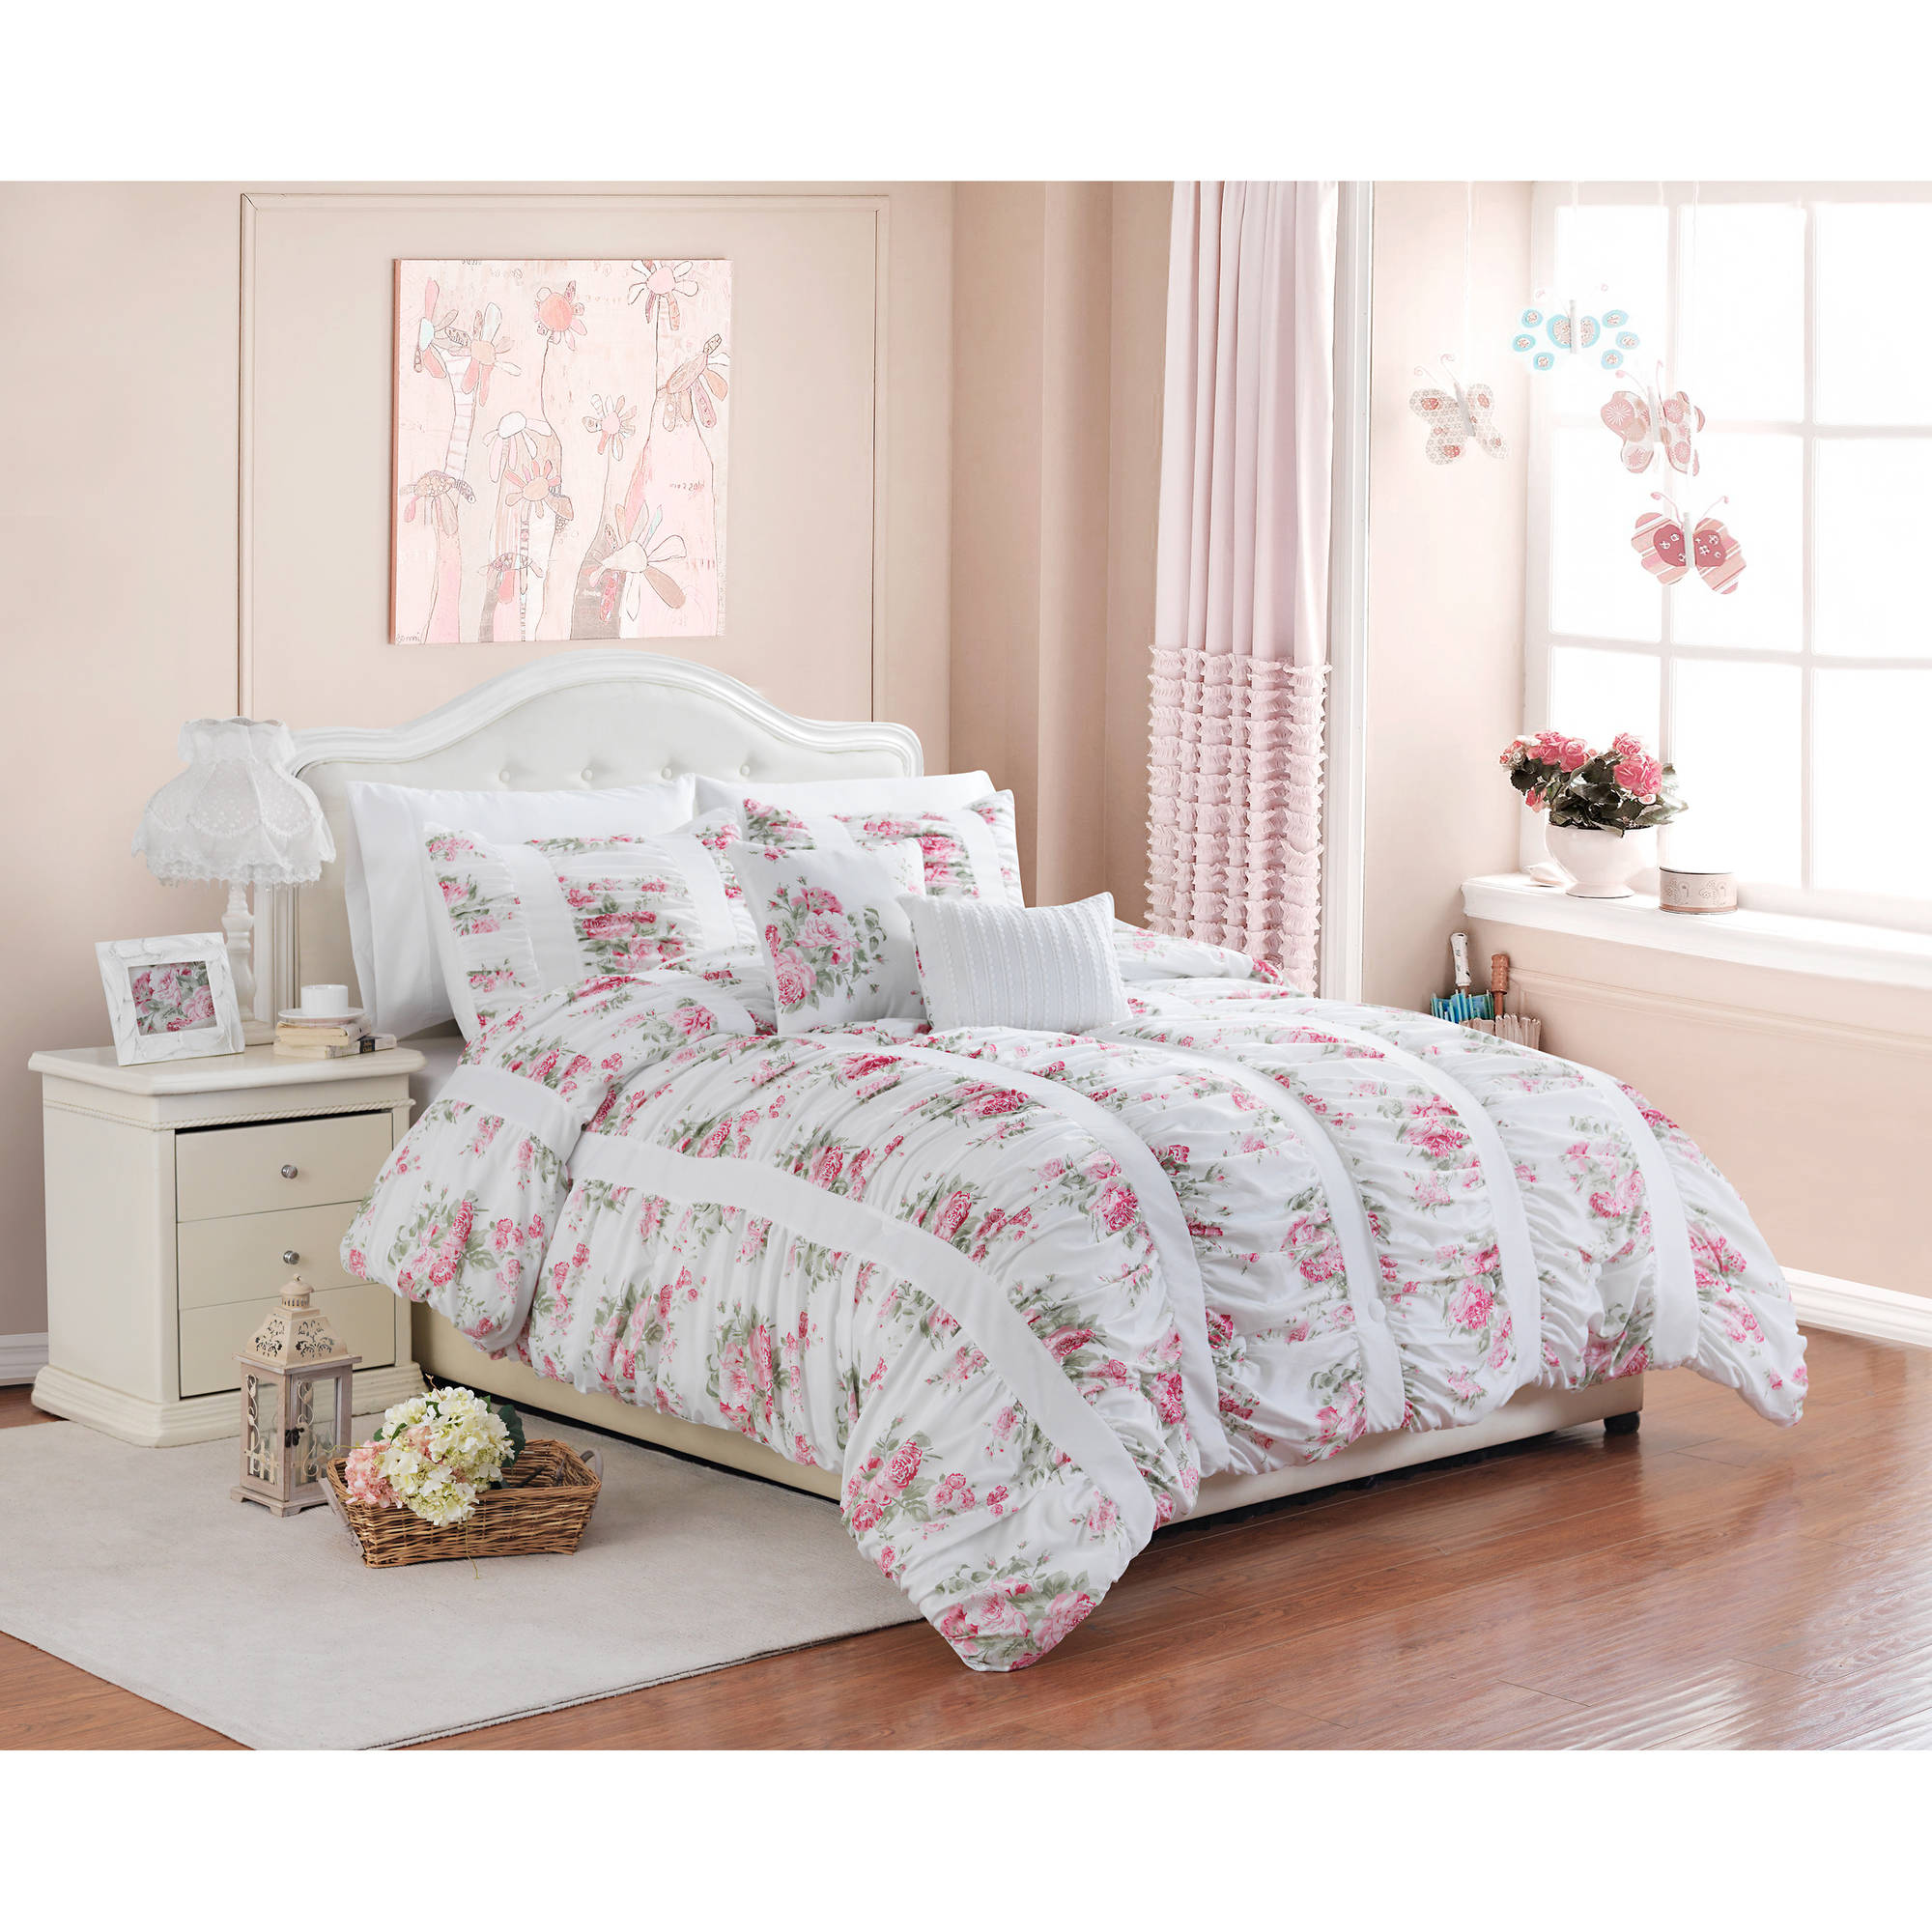 Better Homes and Gardens 5-Piece Floral Ruching Bedding Comforter Set